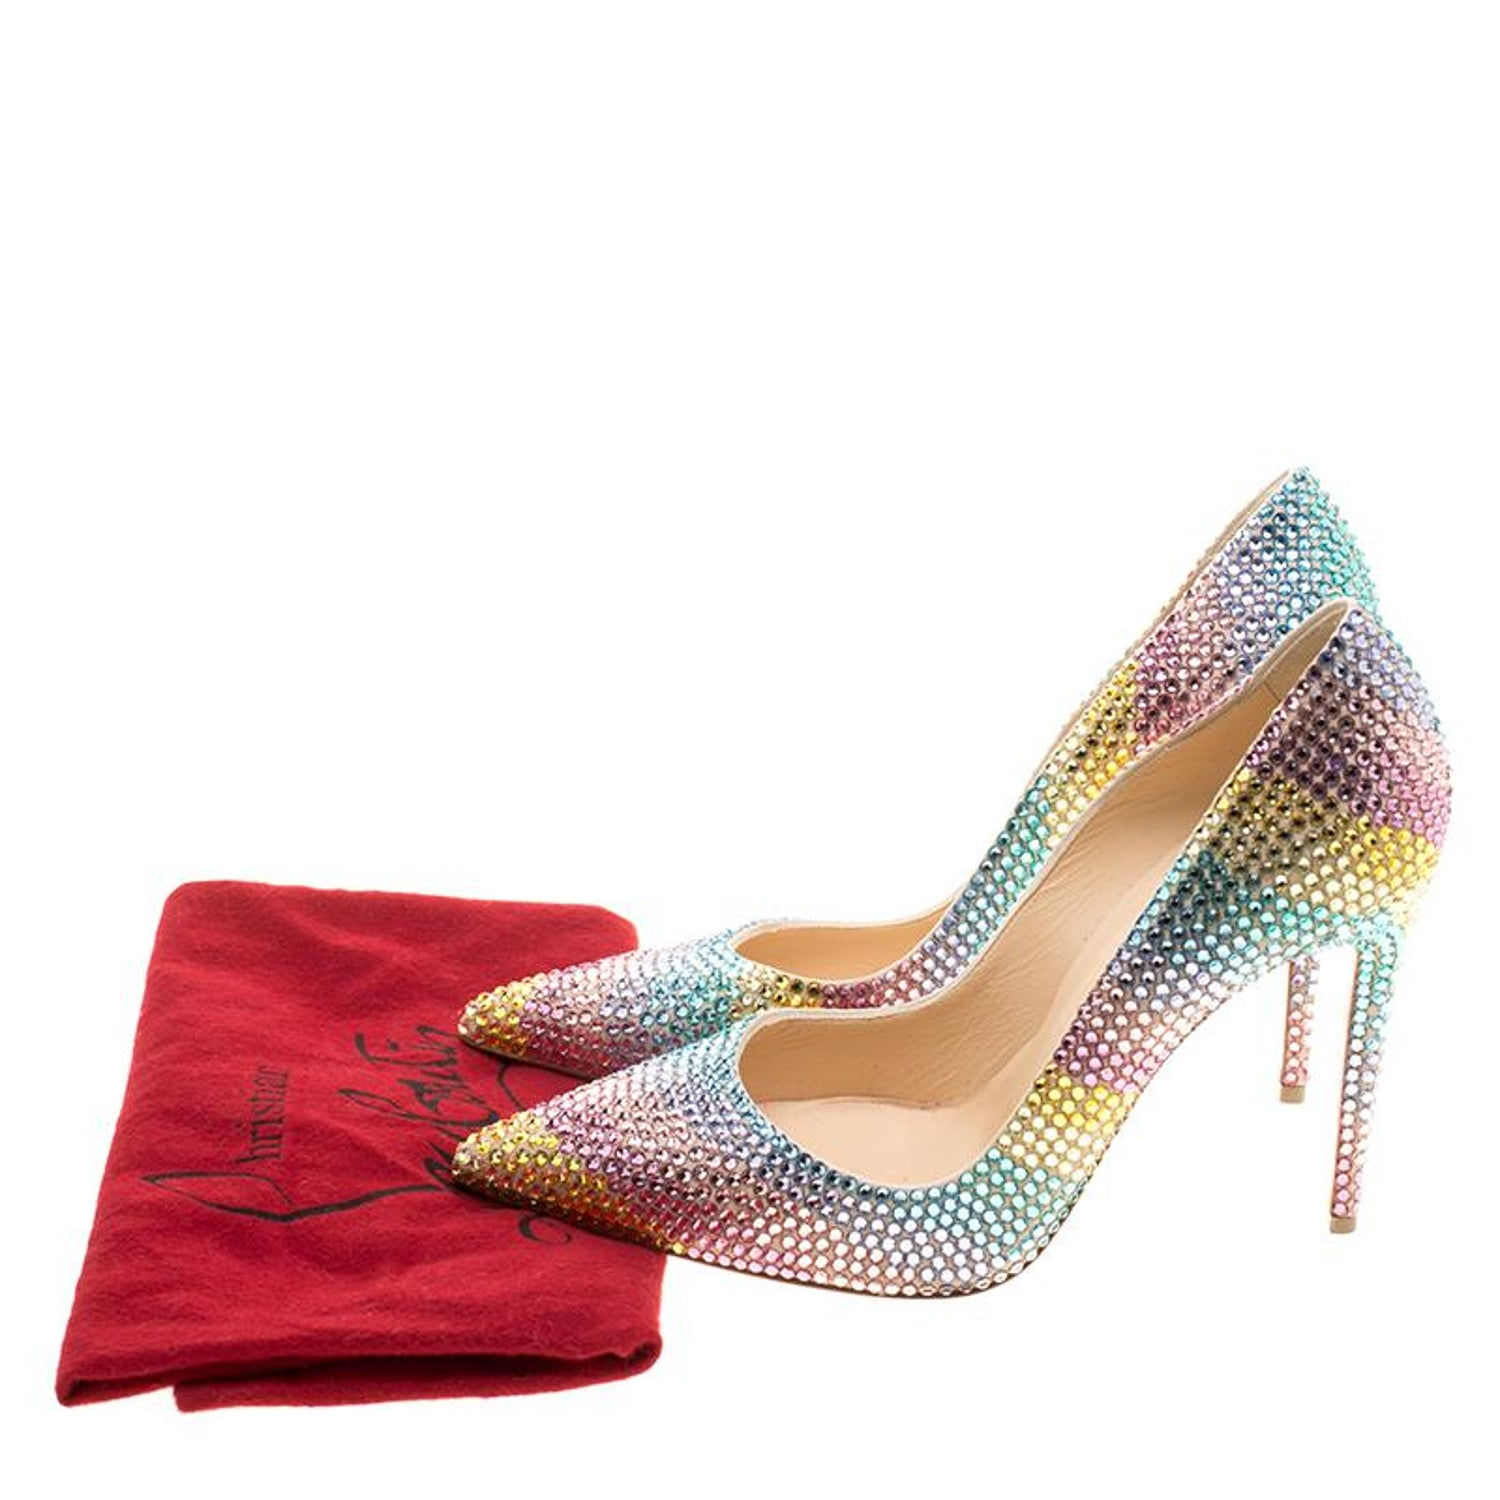 20b9e46b8d4d Christian Louboutin Multicolor Crystal Embelllished Suede Rainbow Strass  Pointed at 1stdibs